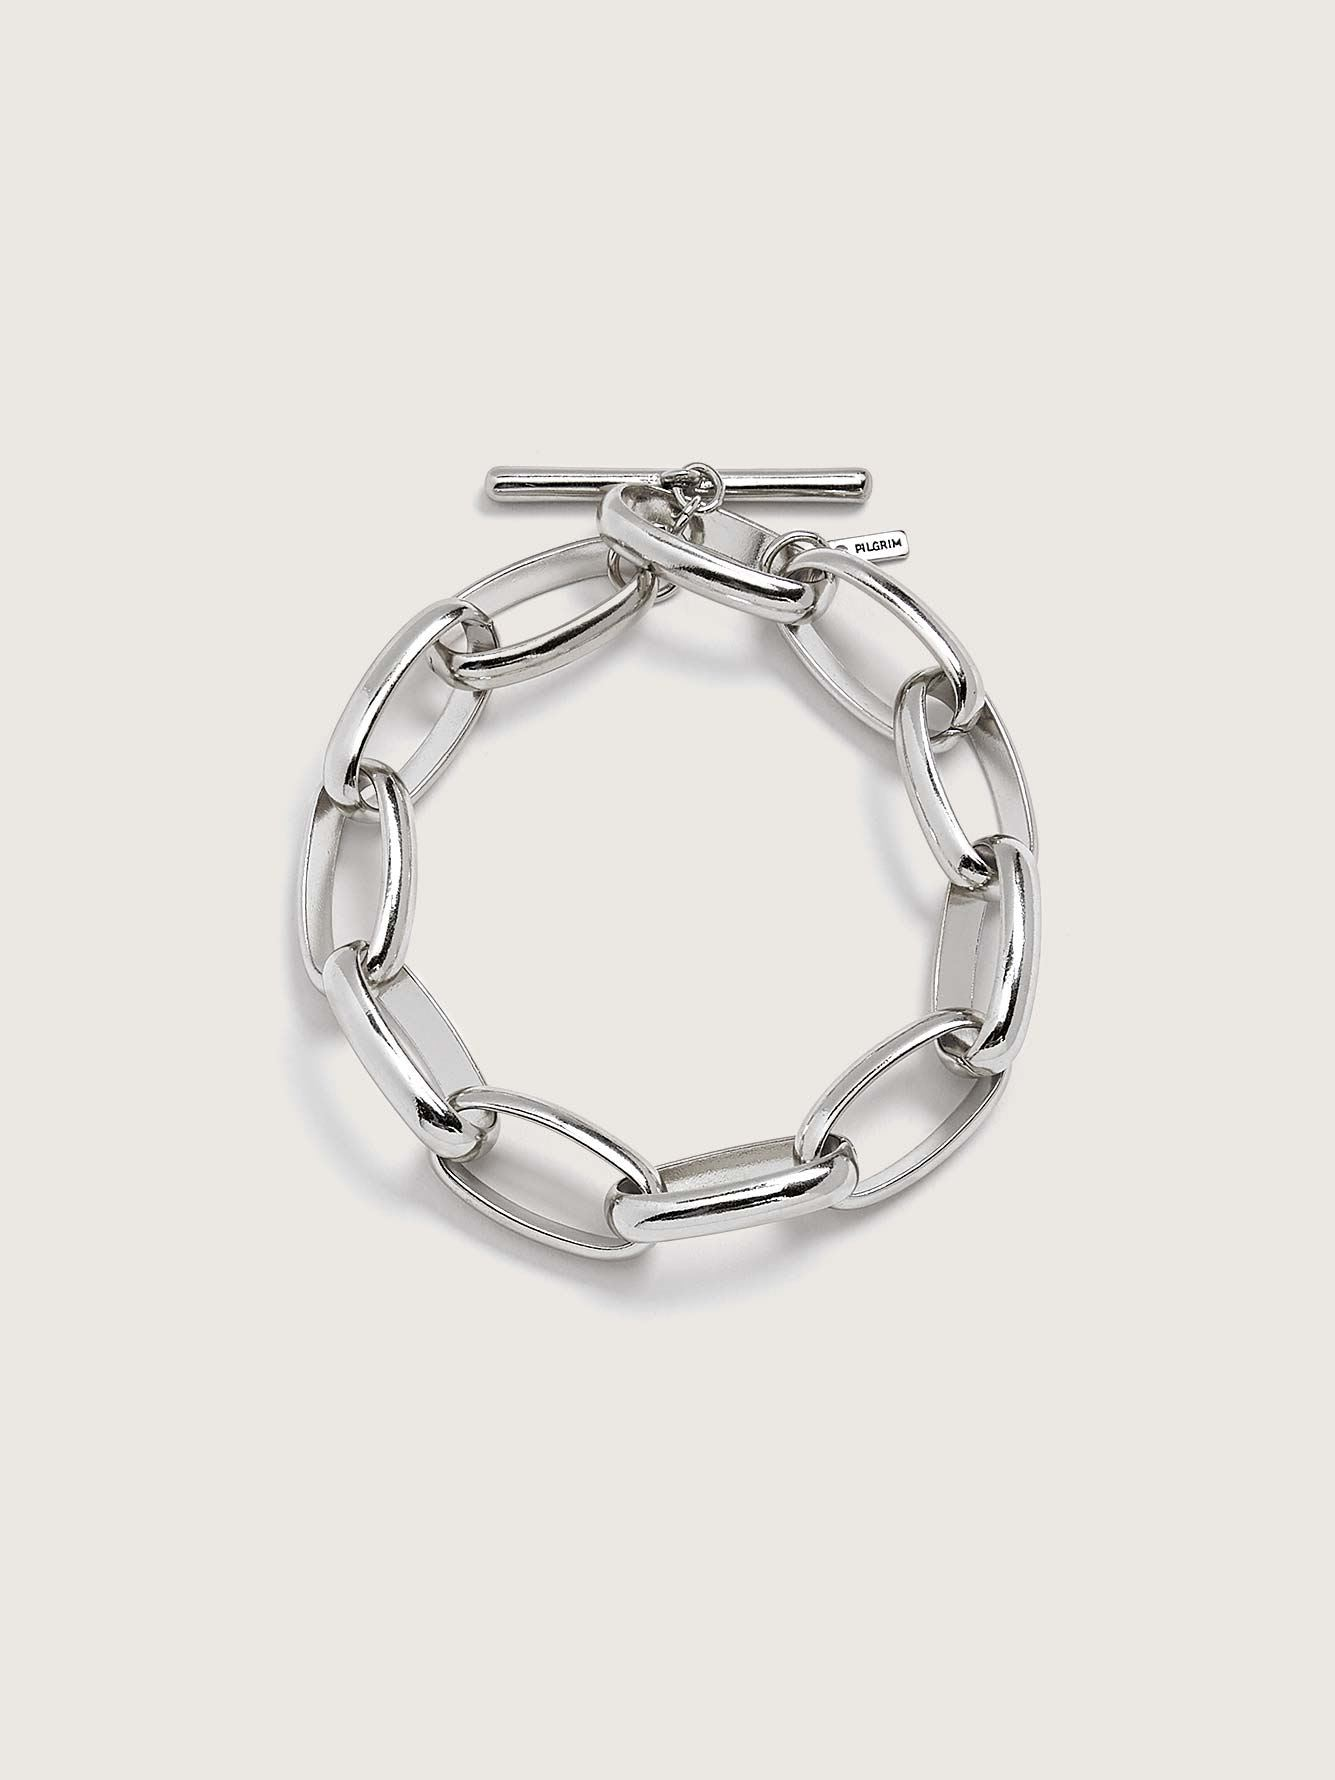 Pilgrim - Adjustable Chain Bracelet